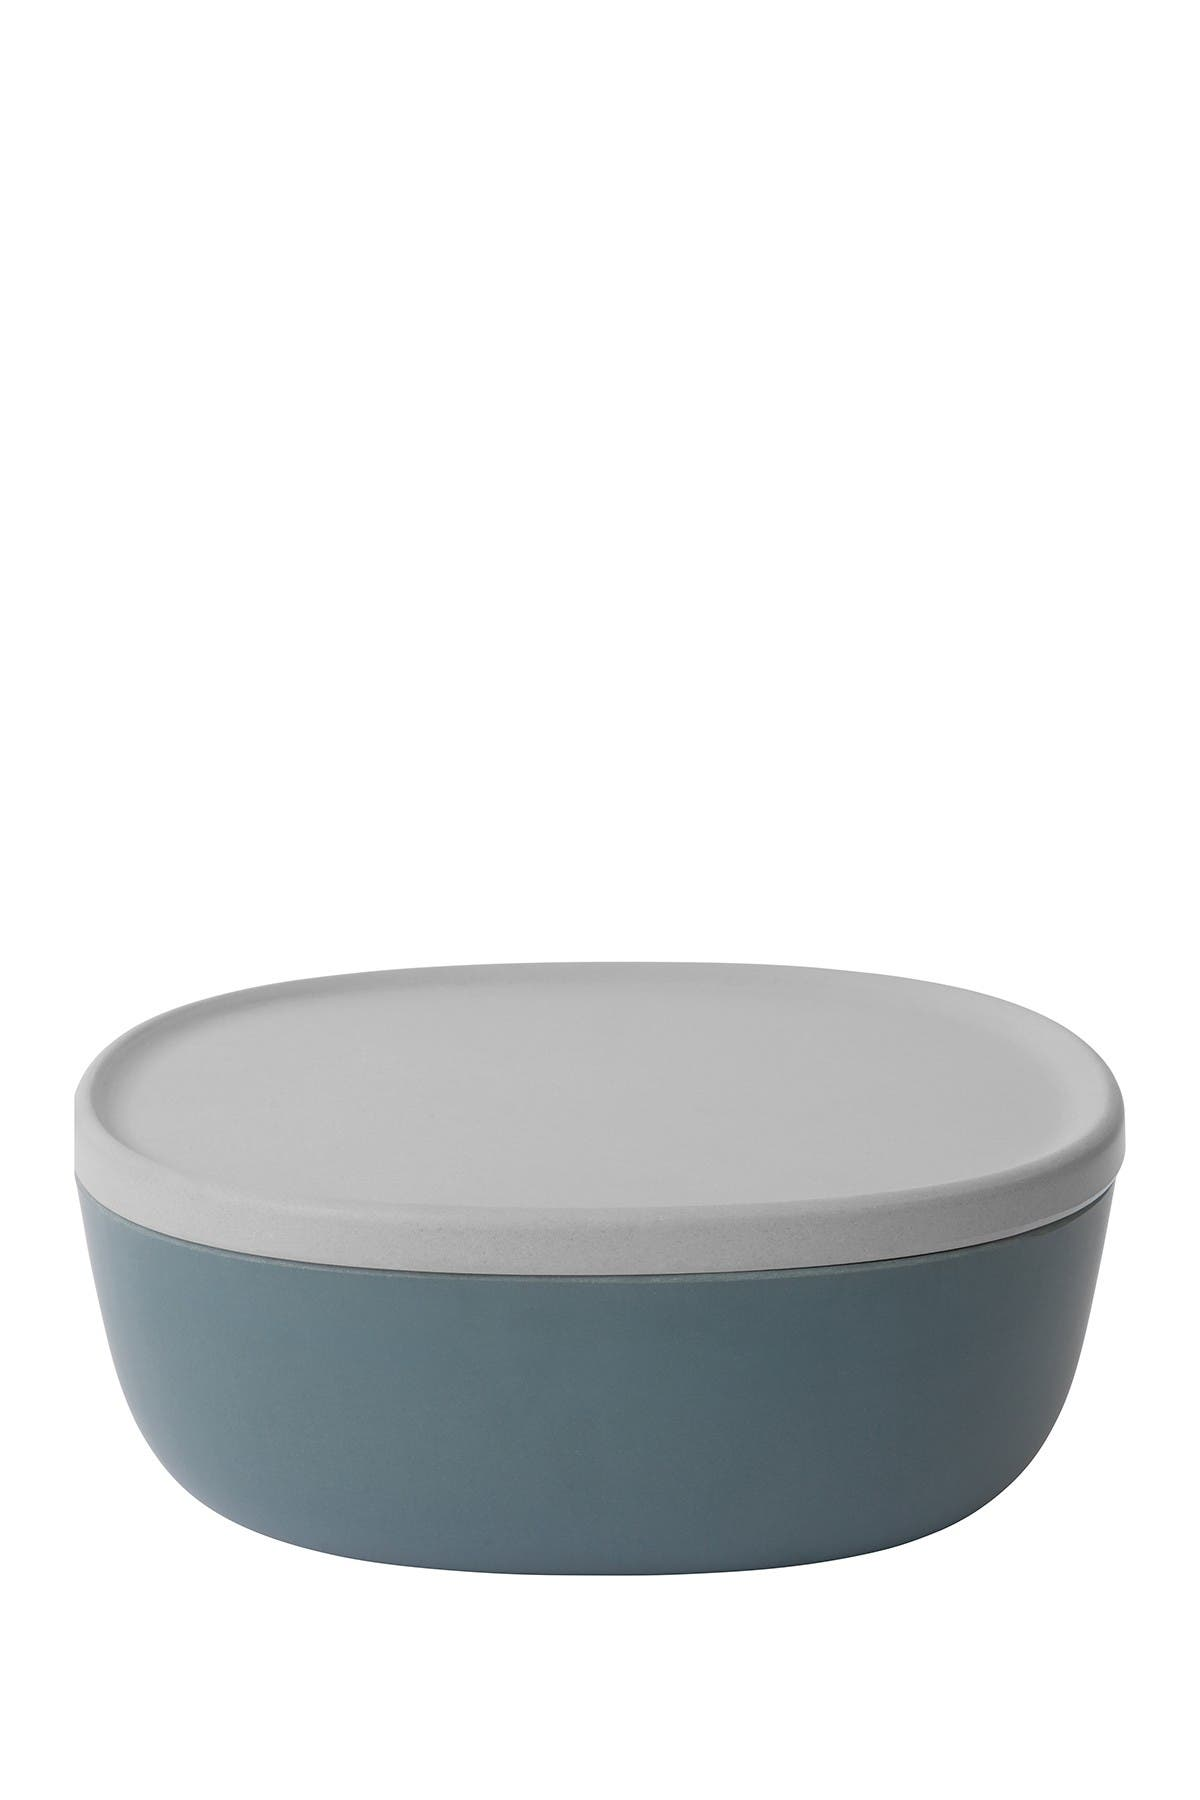 Image of BergHOFF Leo Large Covered Bowl